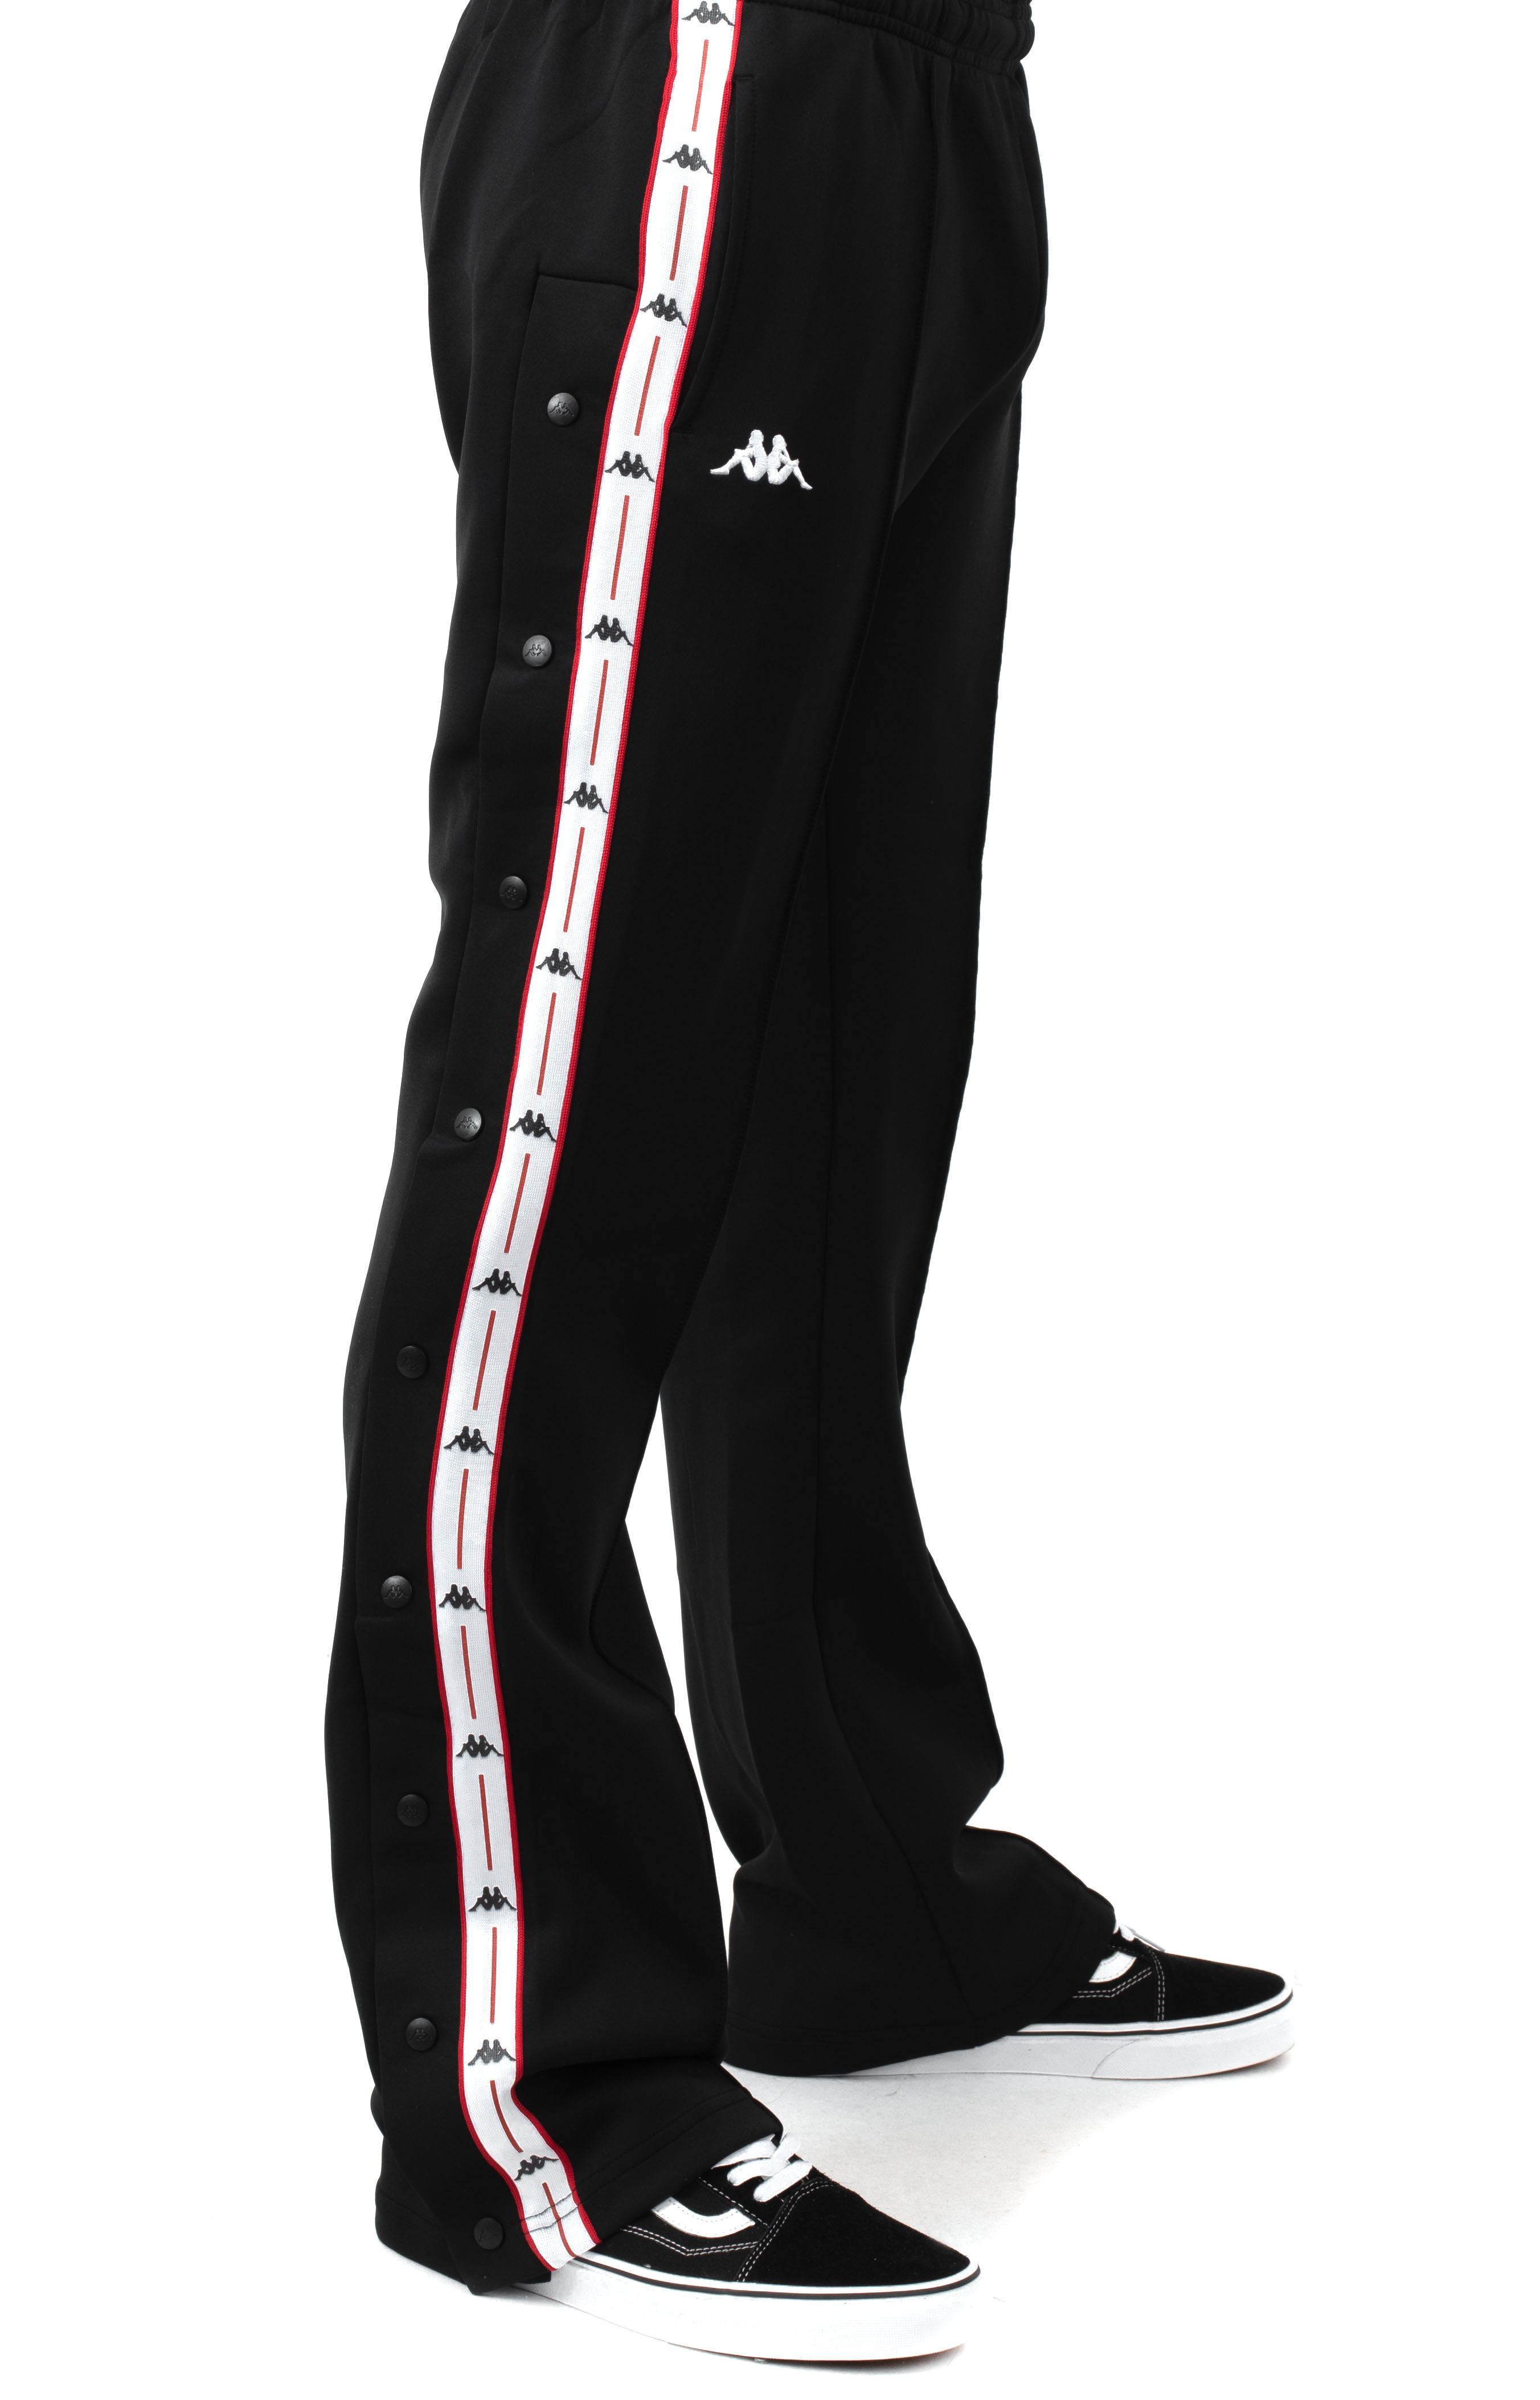 Authentic Jpn Banity Snap Pants - Black/White/Red